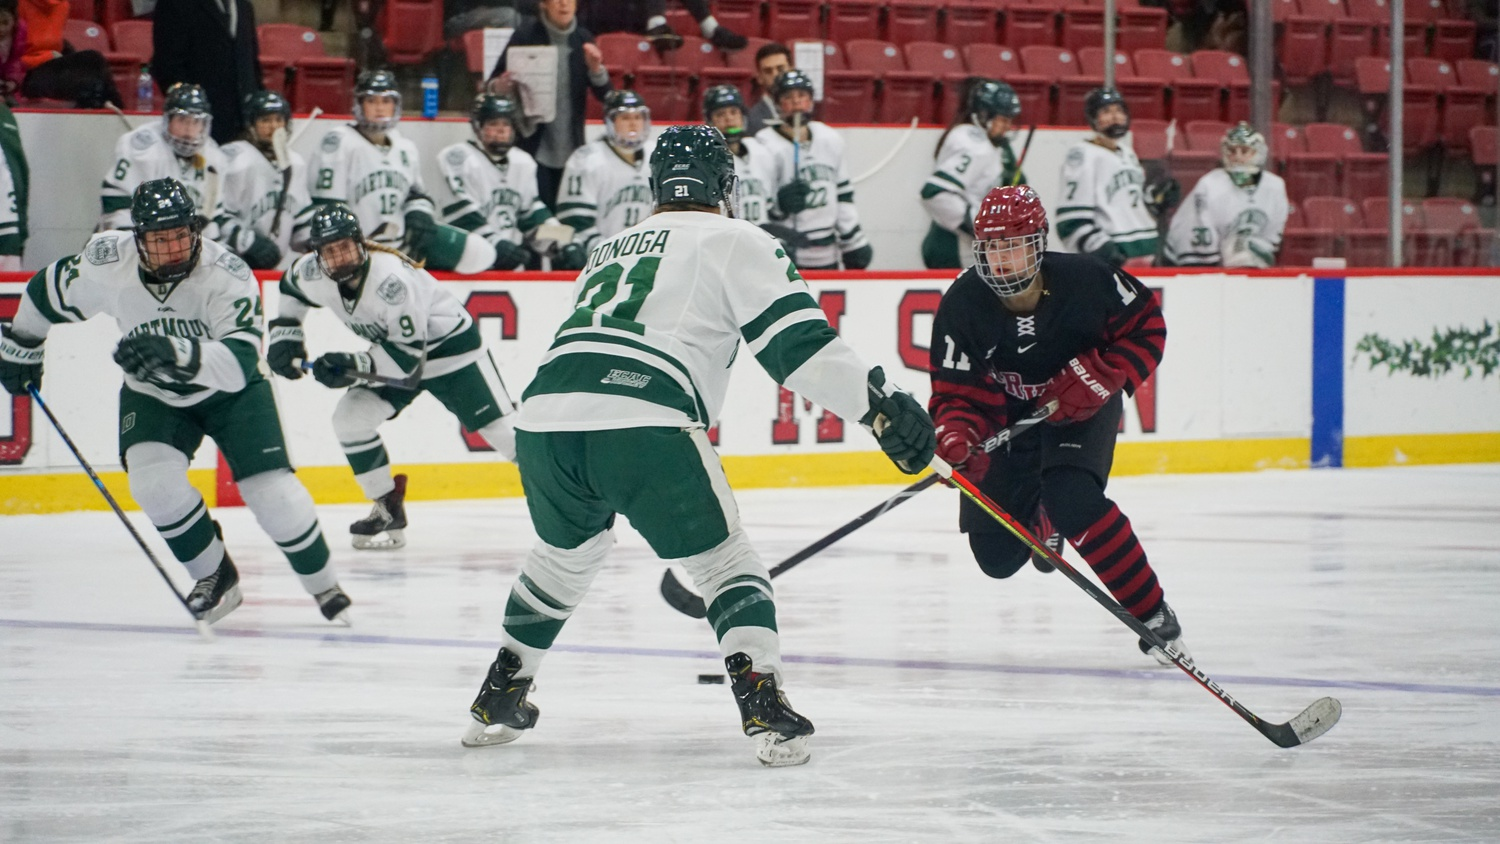 Sophomore forward Kristin Della Rovere facilitated the Crimson's offense in the win over the Big Green, leading the squad with two assists.